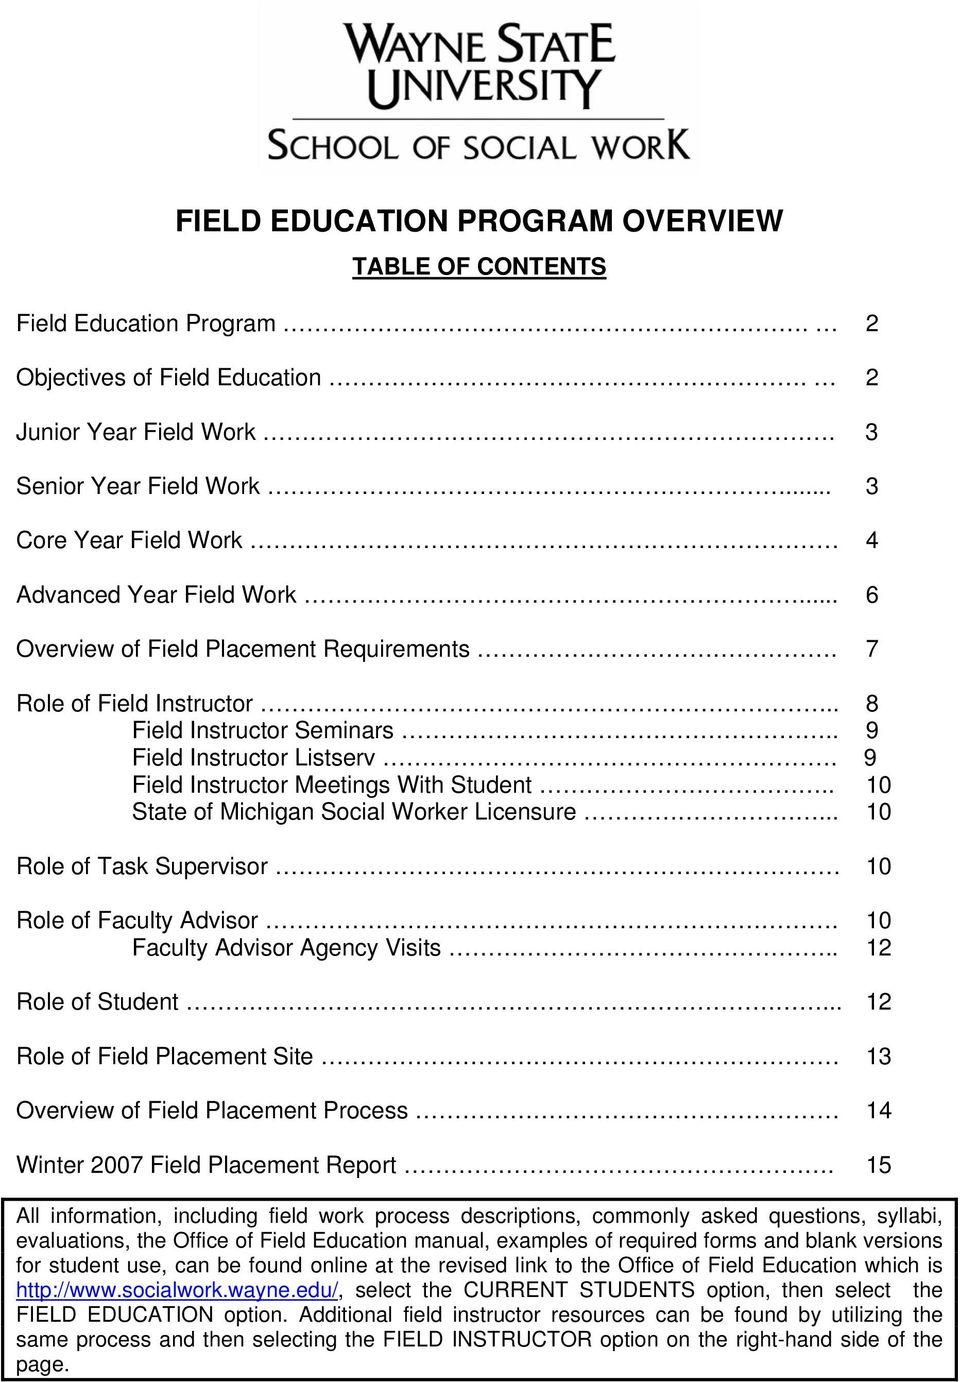 9 Field Instructor Meetings With Student.. 10 State of Michigan Social Worker Licensure... 10 Role of Task Supervisor 10 Role of Faculty Advisor. 10 Faculty Advisor Agency Visits.. 12 Role of Student.